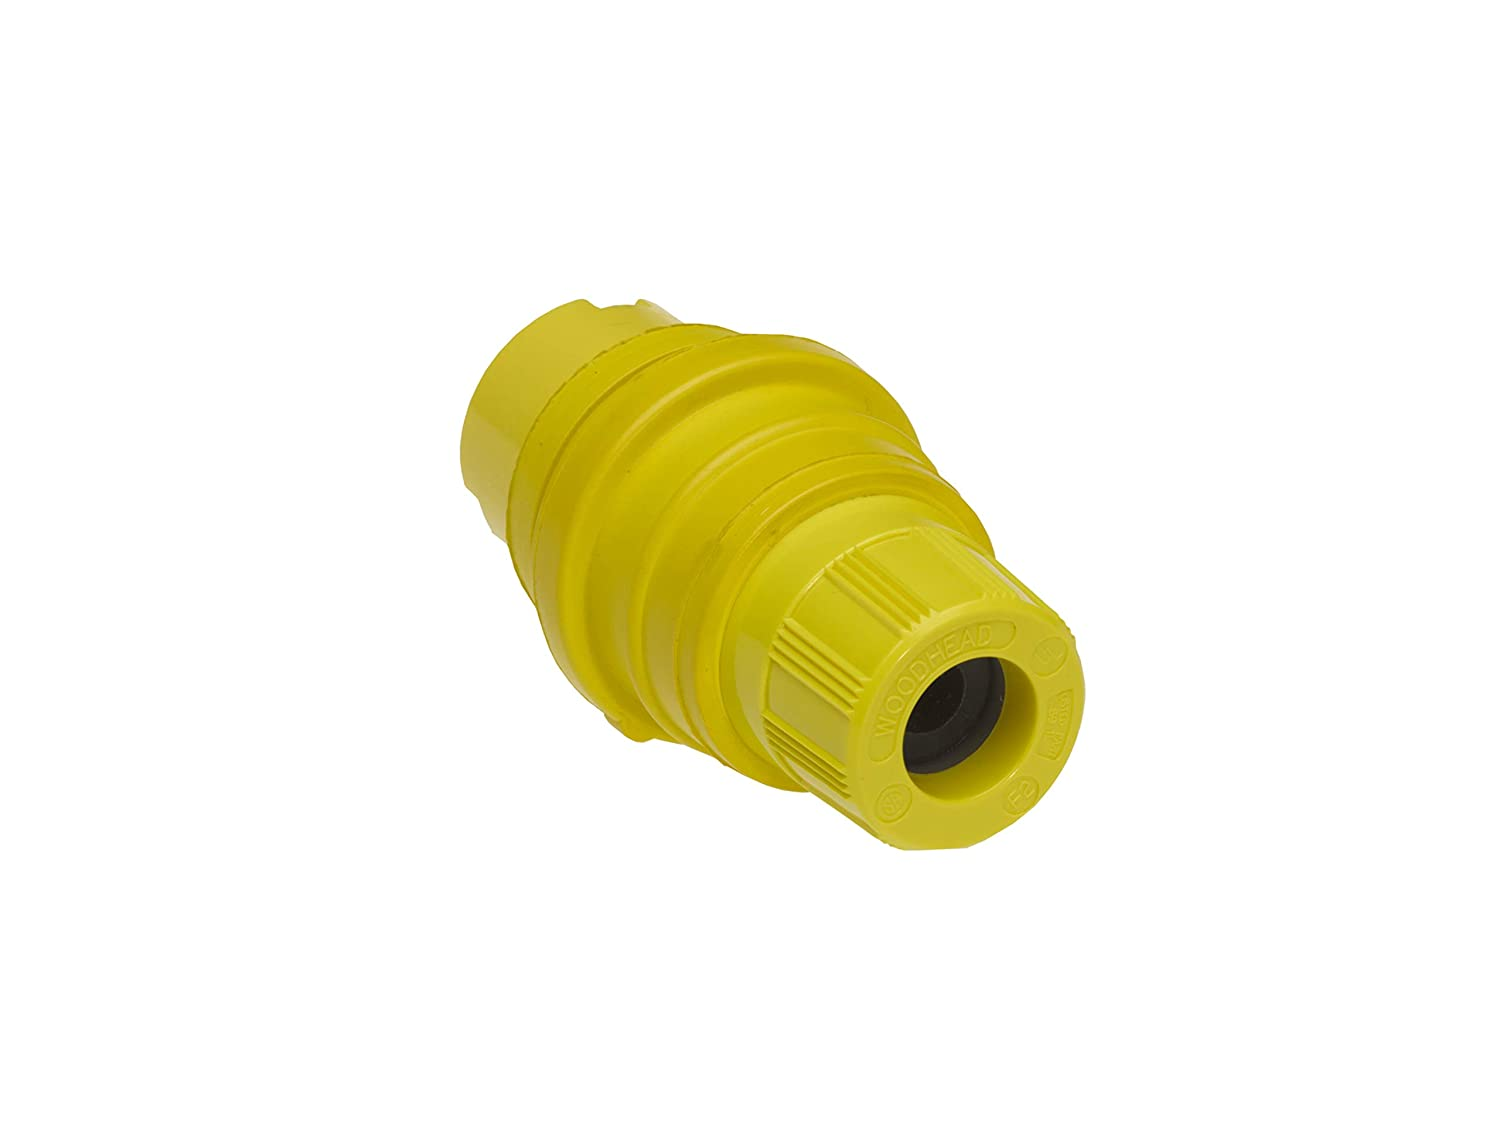 125V//250V Voltage NEMA L14-20 Configuration Yellow 20A Current 3 Poles Woodhead 27W74MB Watertite Wet Location Locking Blade Connector For Male Receptacle 4 Wires